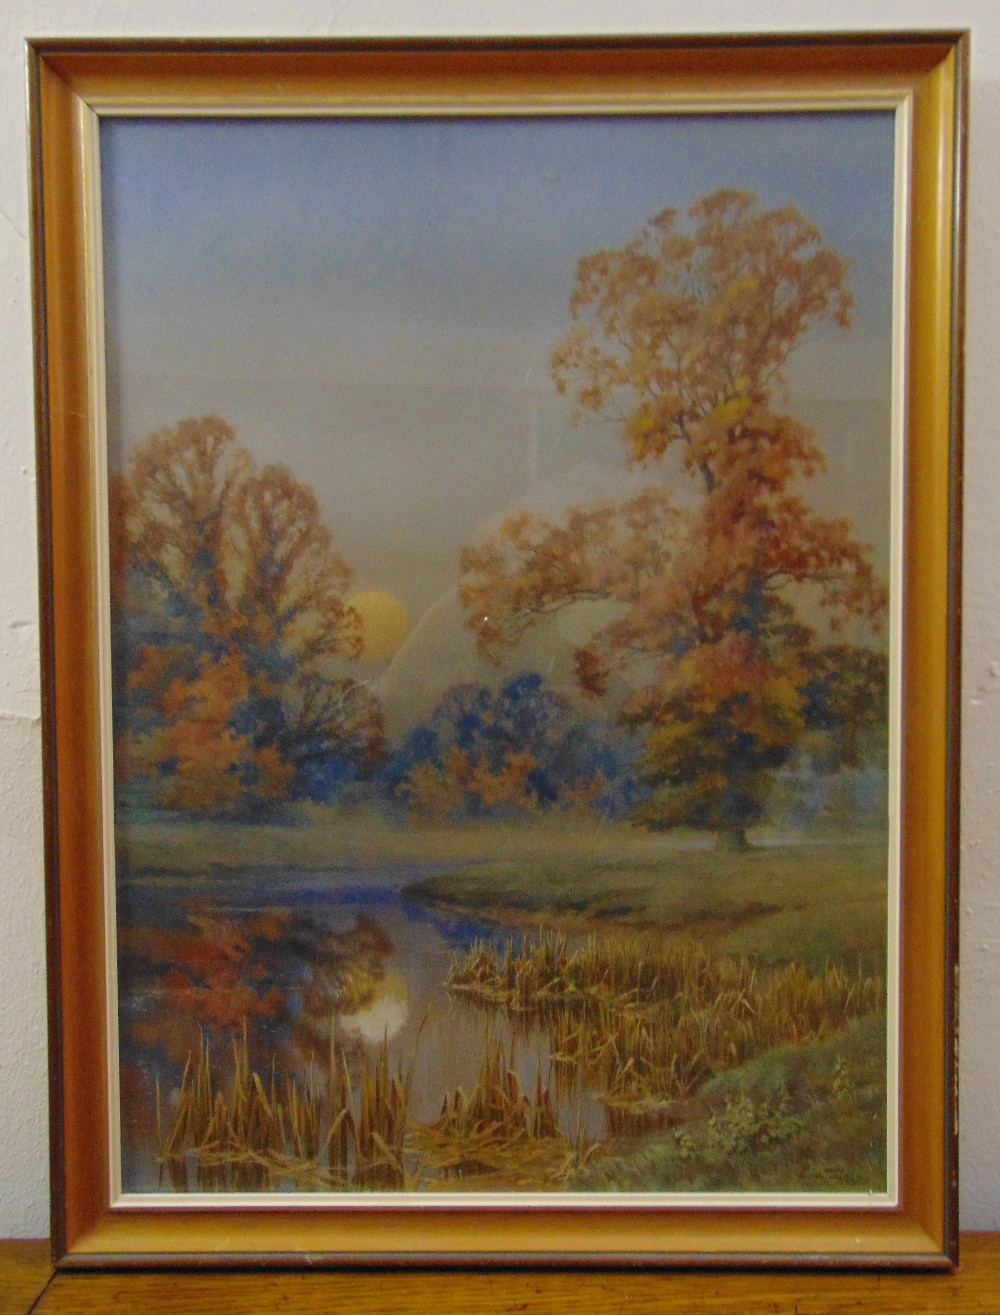 Lot 78 - Ernest Walter Twining (1875-1956) framed and glazed watercolour of a country landscape, signed